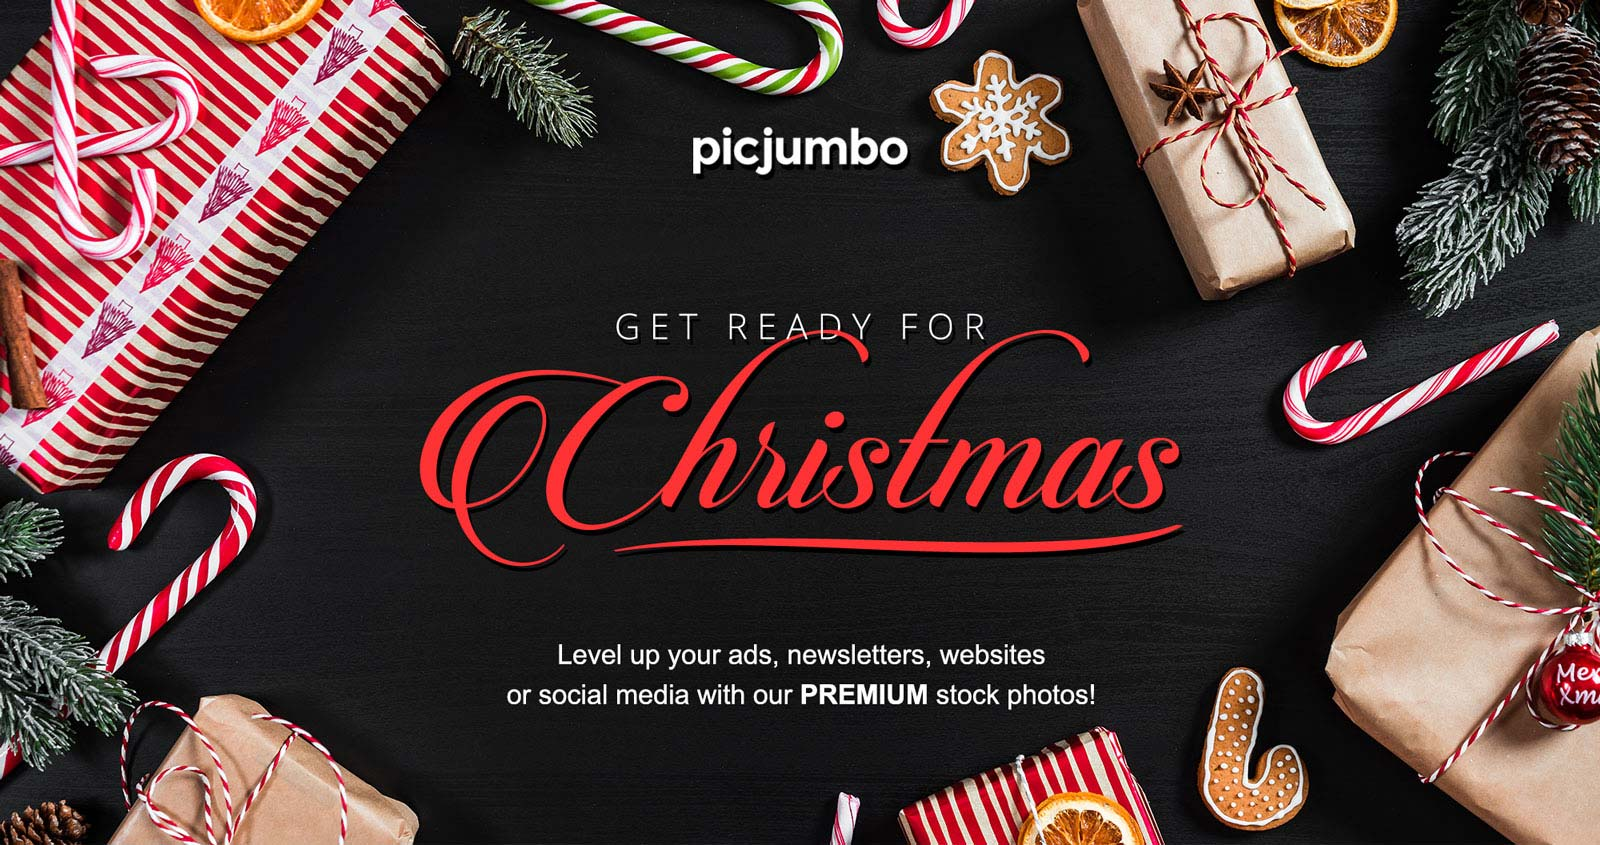 Download exclusive Christmas stock photos from our Membership! — picjumbo BLOG